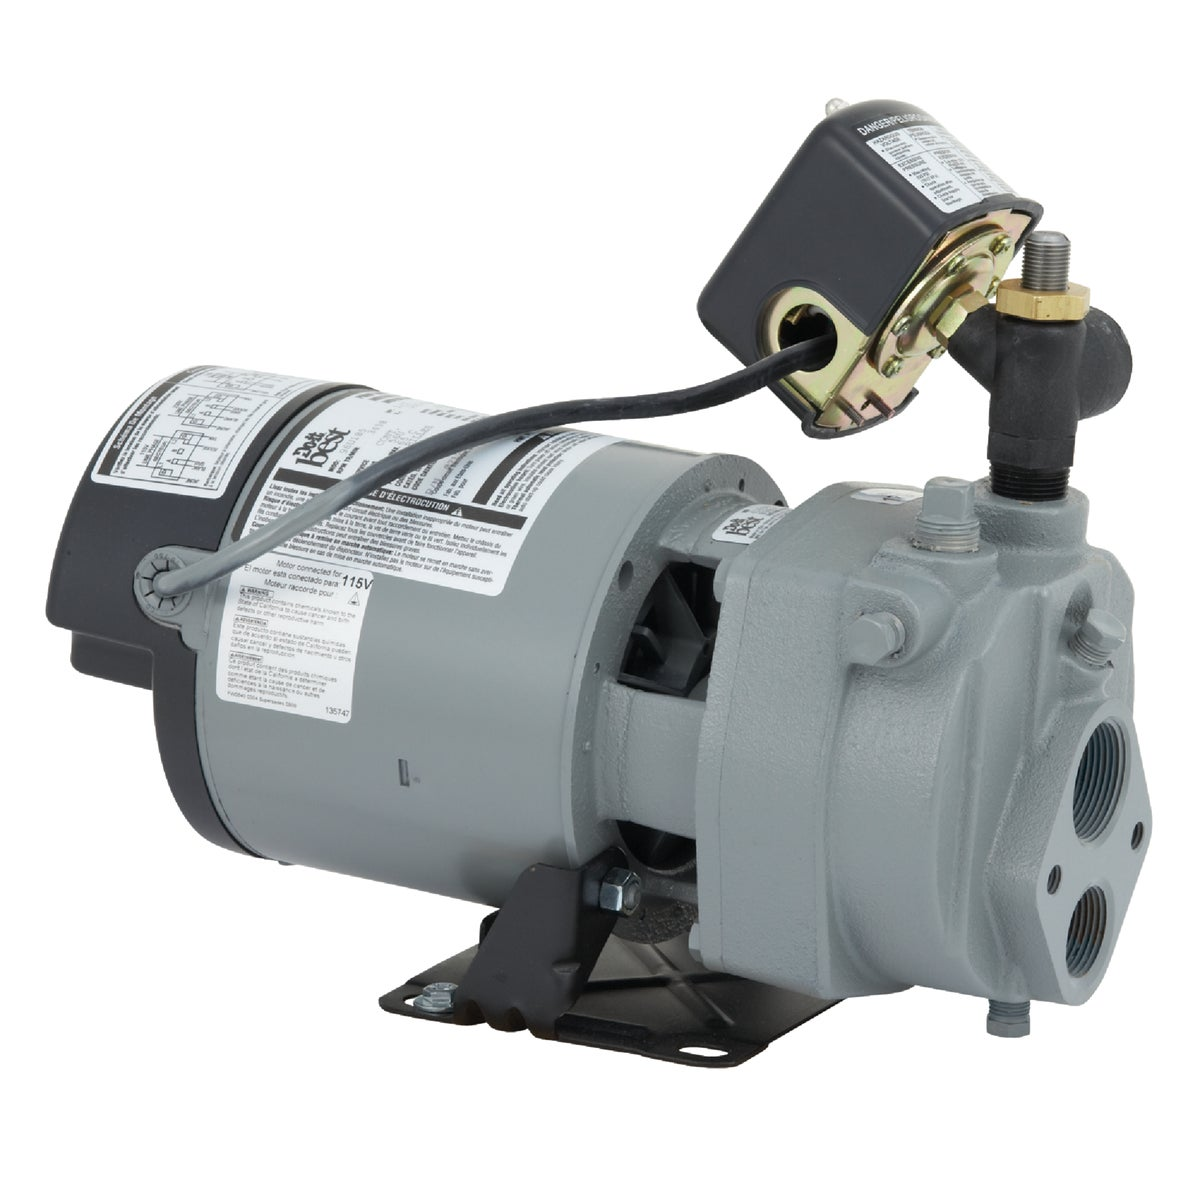 1/2HP CONV JET WELL PUMP - JHU05 by Star Water Systems